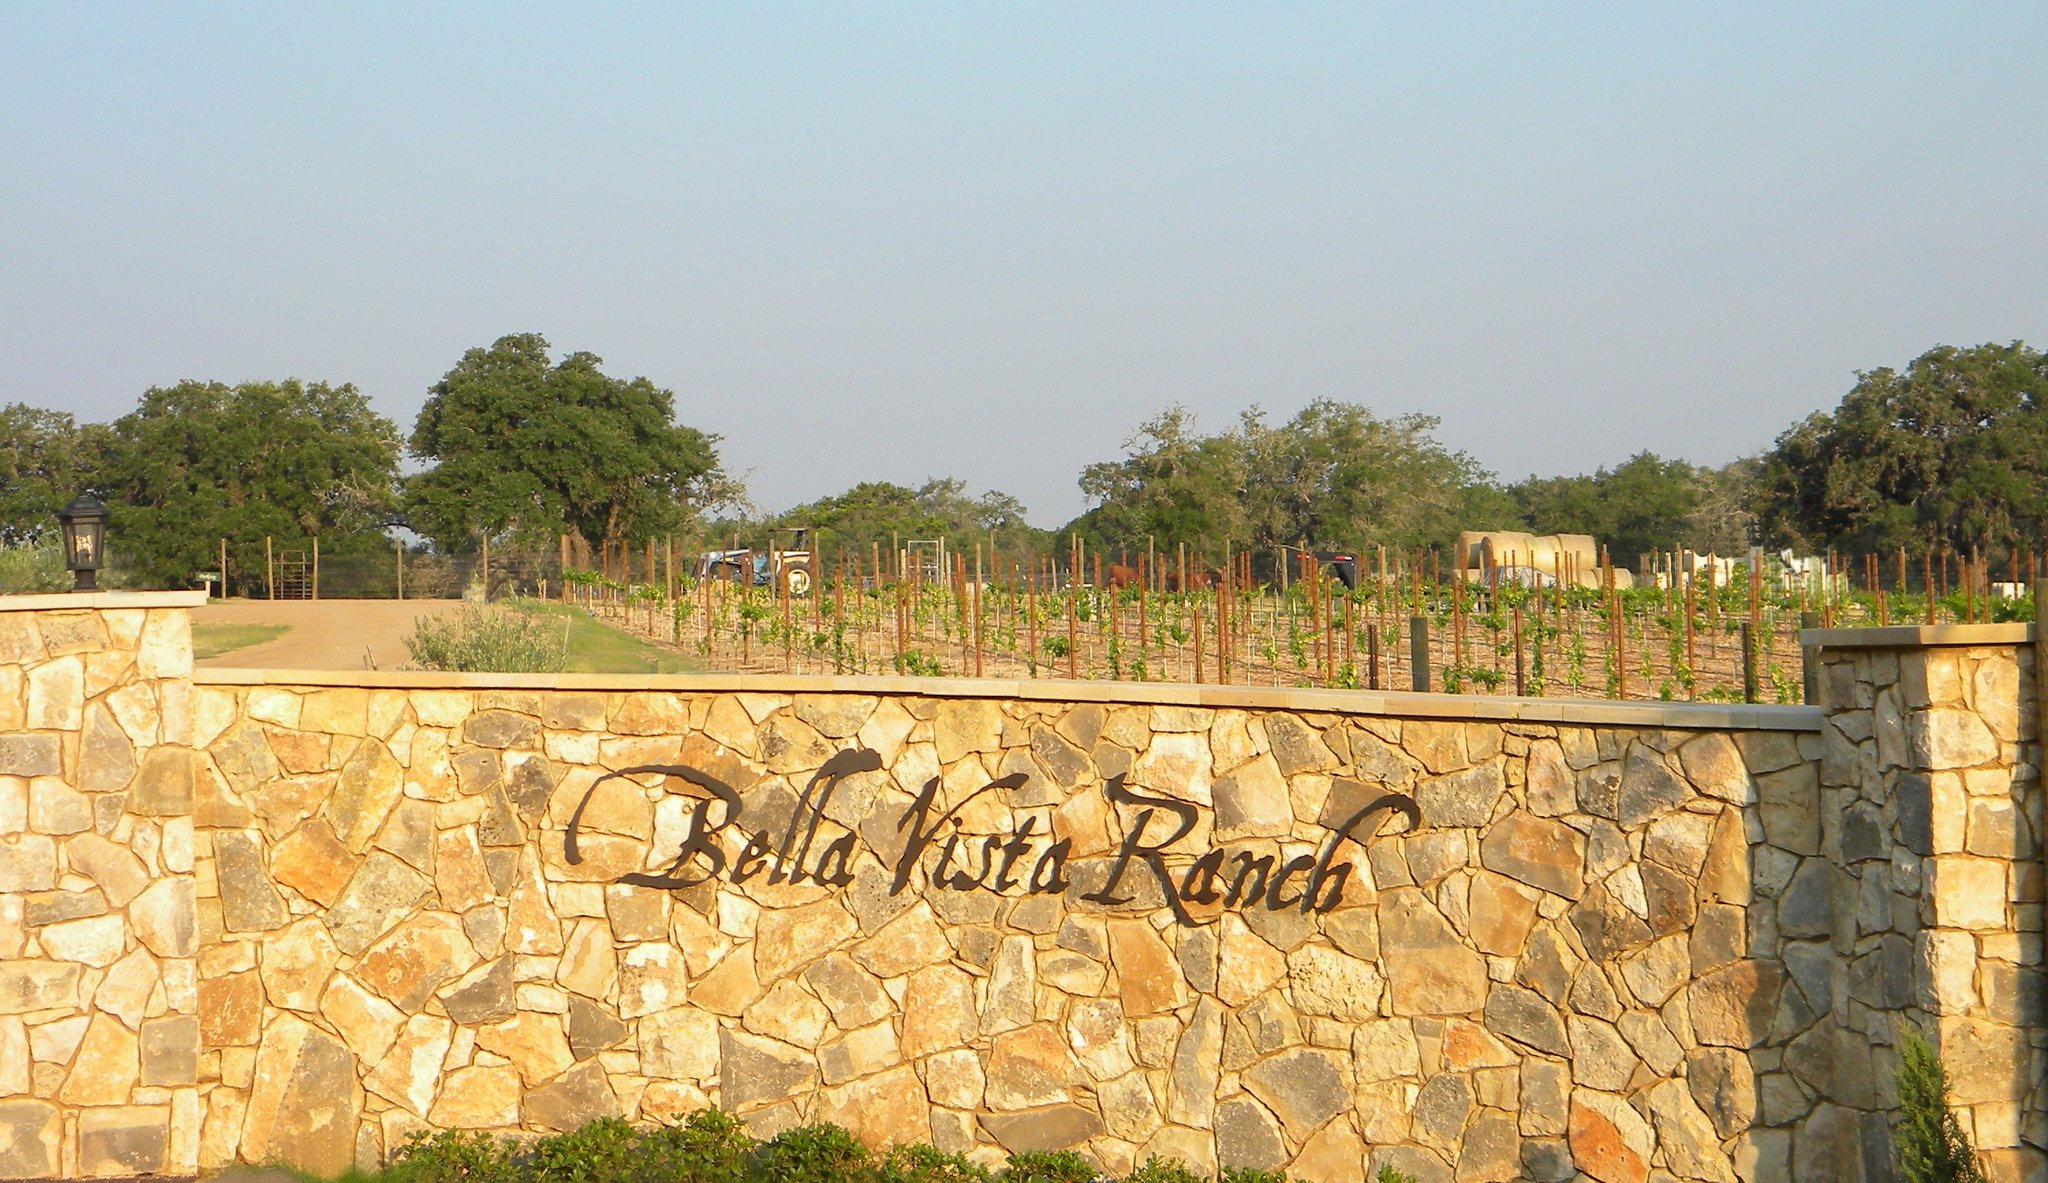 Bella Vista Ranch